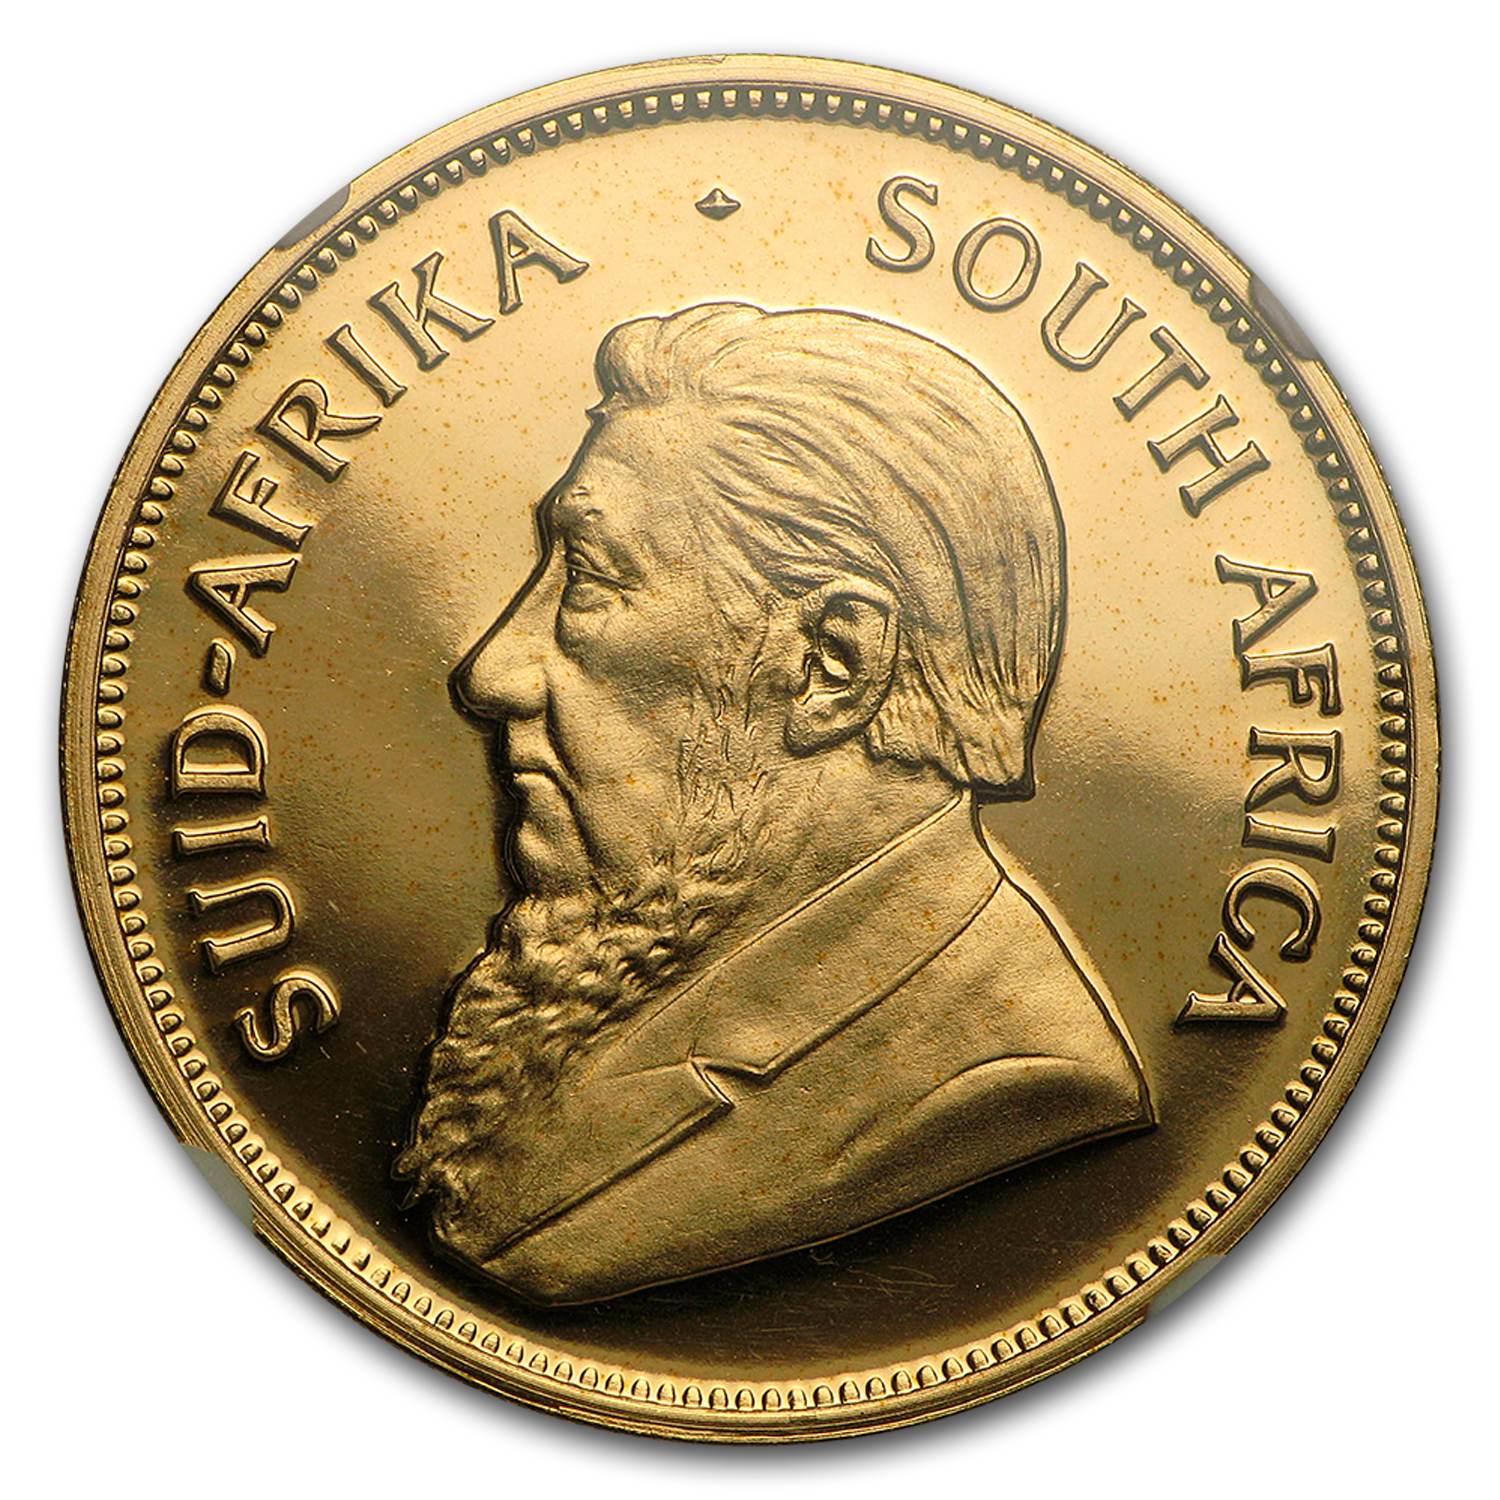 1978 South Africa 1 oz Gold Krugerrand PF-69 NGC